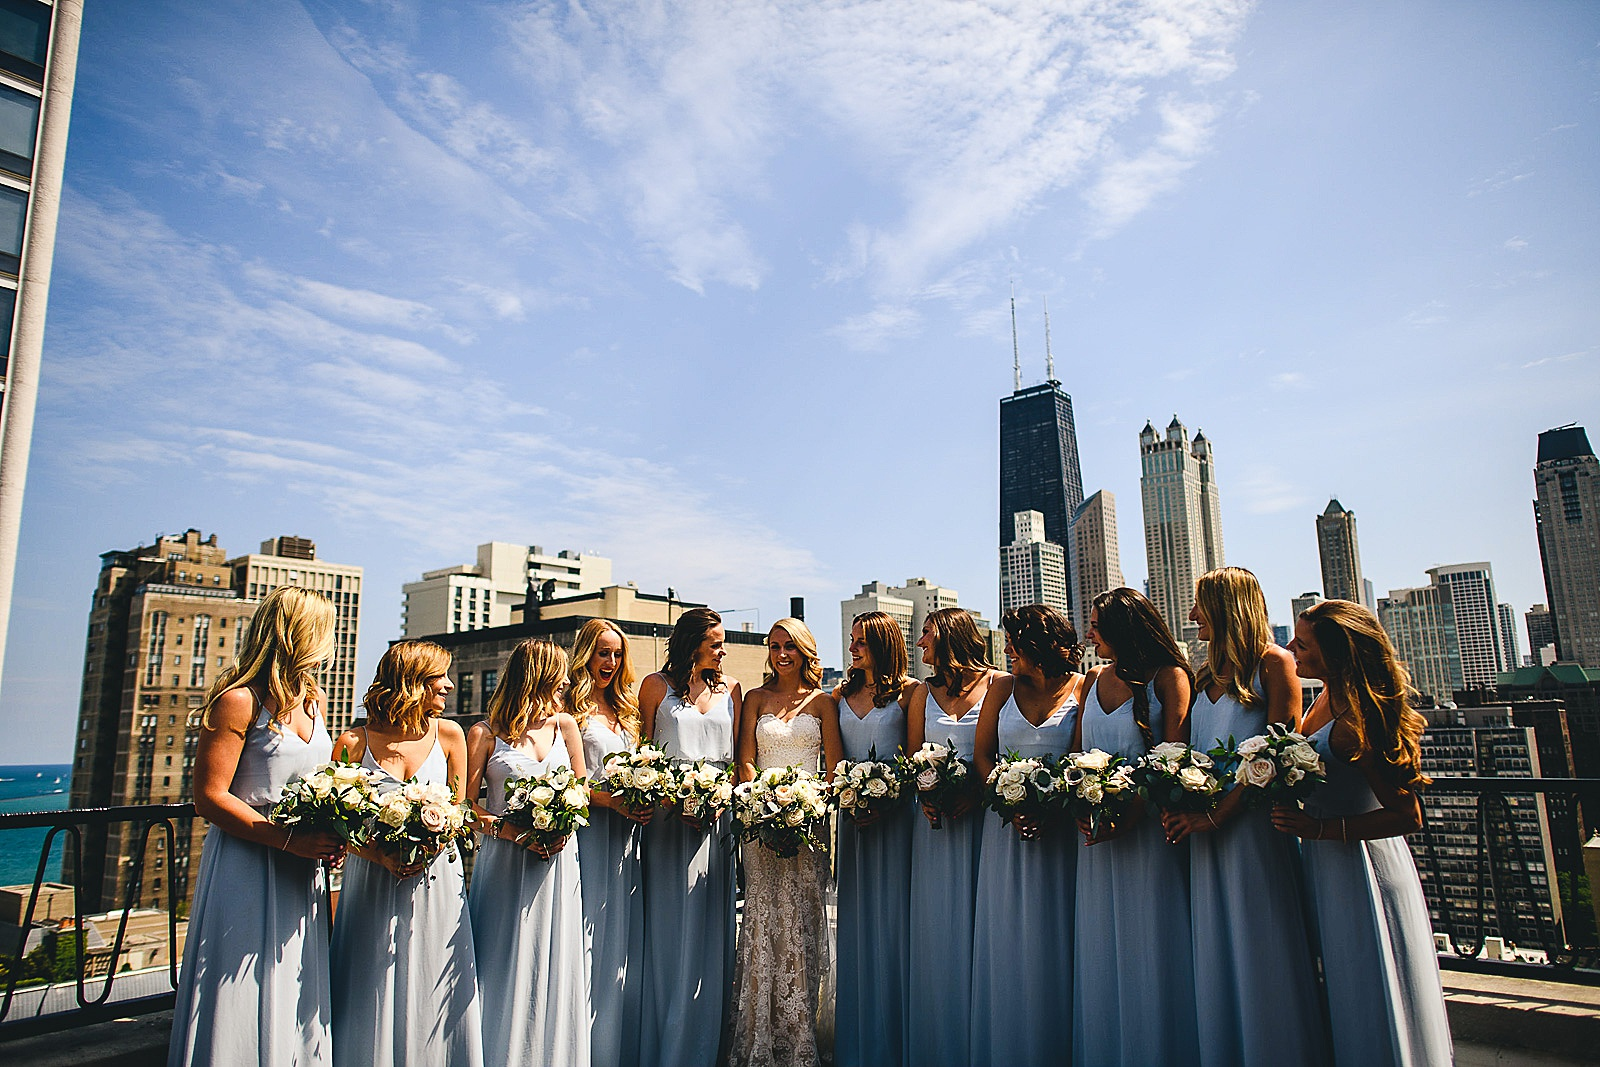 22 ambassador hotel bridal photos - Audrey + Jake's Beautiful Chicago Wedding at Chez